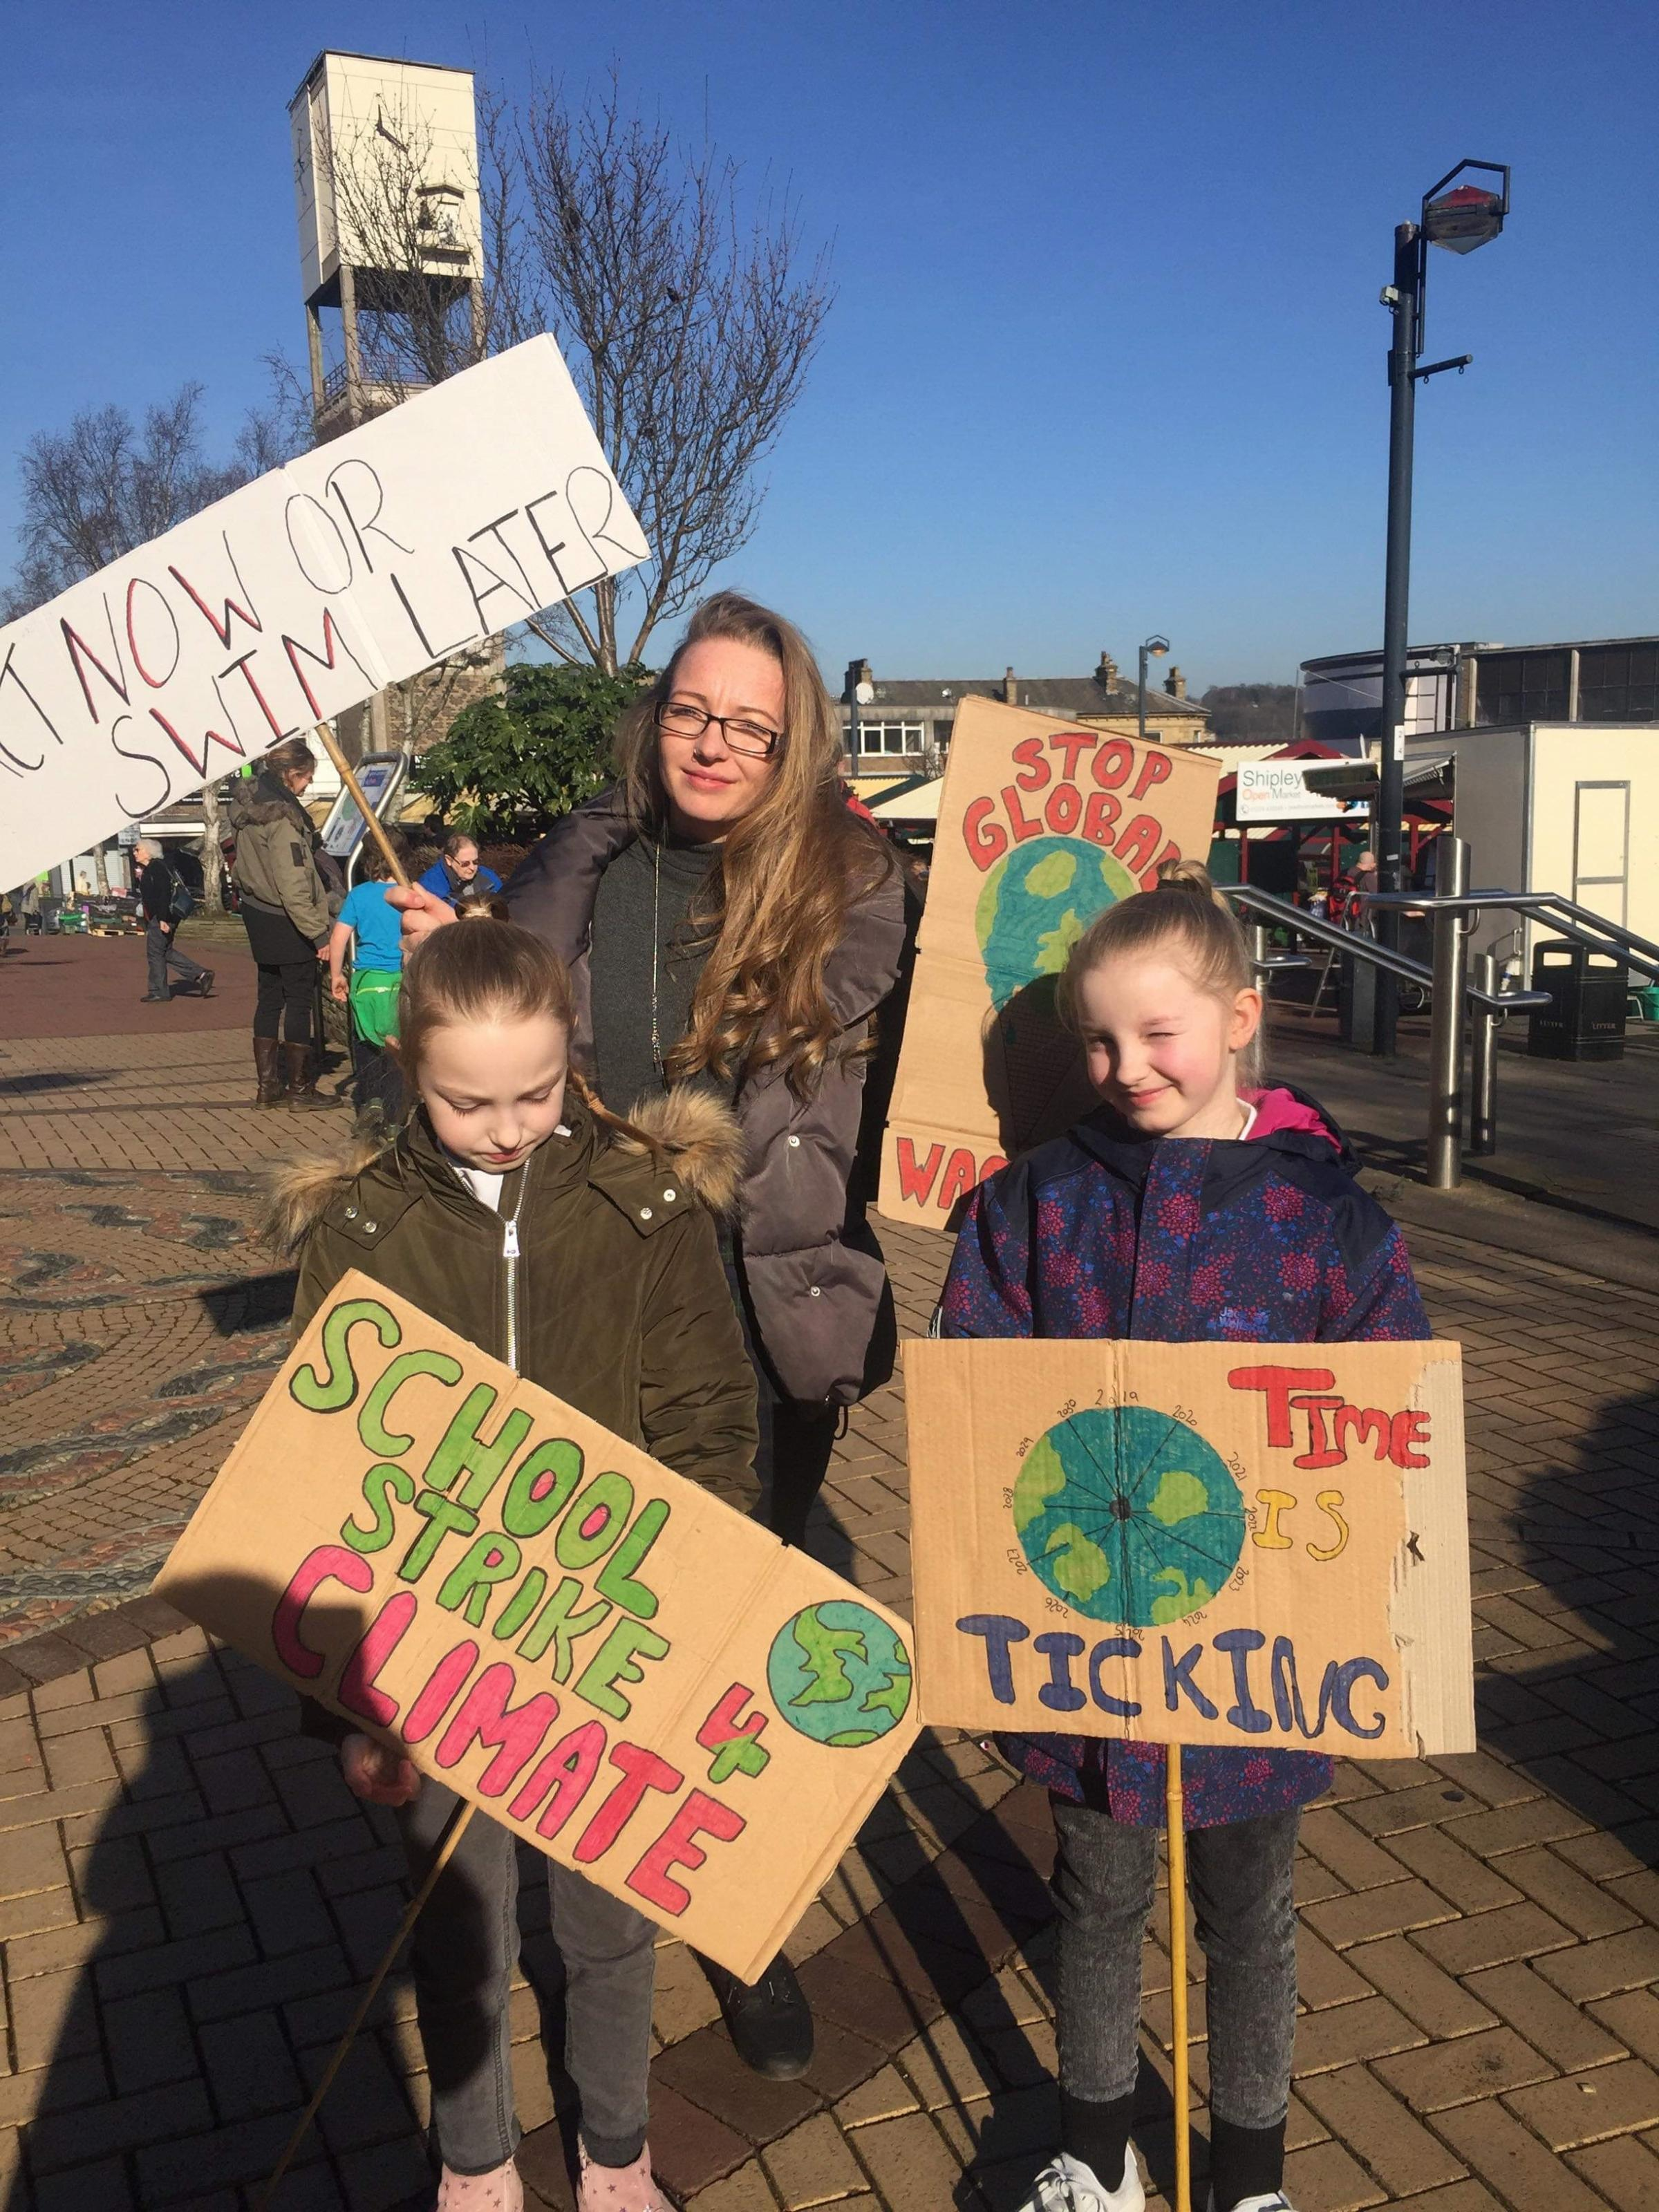 Shipley climate change protest in support of students' strike